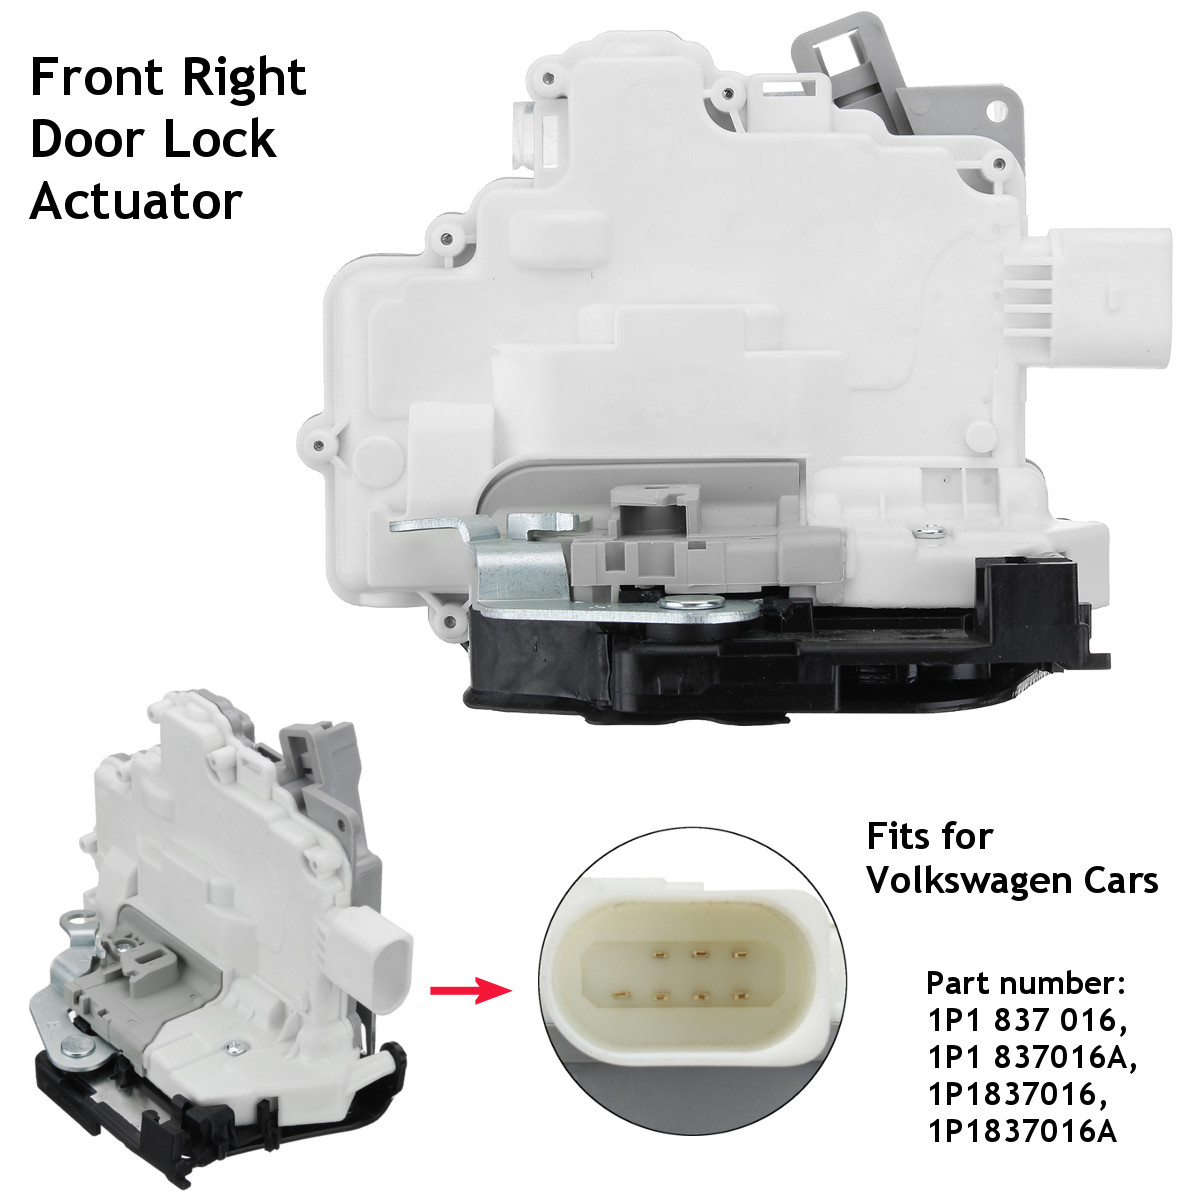 Car Front Right Door Lock Catch Mechanism Actuator For VW Seat Altea Toledo 3 mk3 Leon Altea XL 5P1 5P2 1P1 5P5 5P8 EOS 1F7 1F8